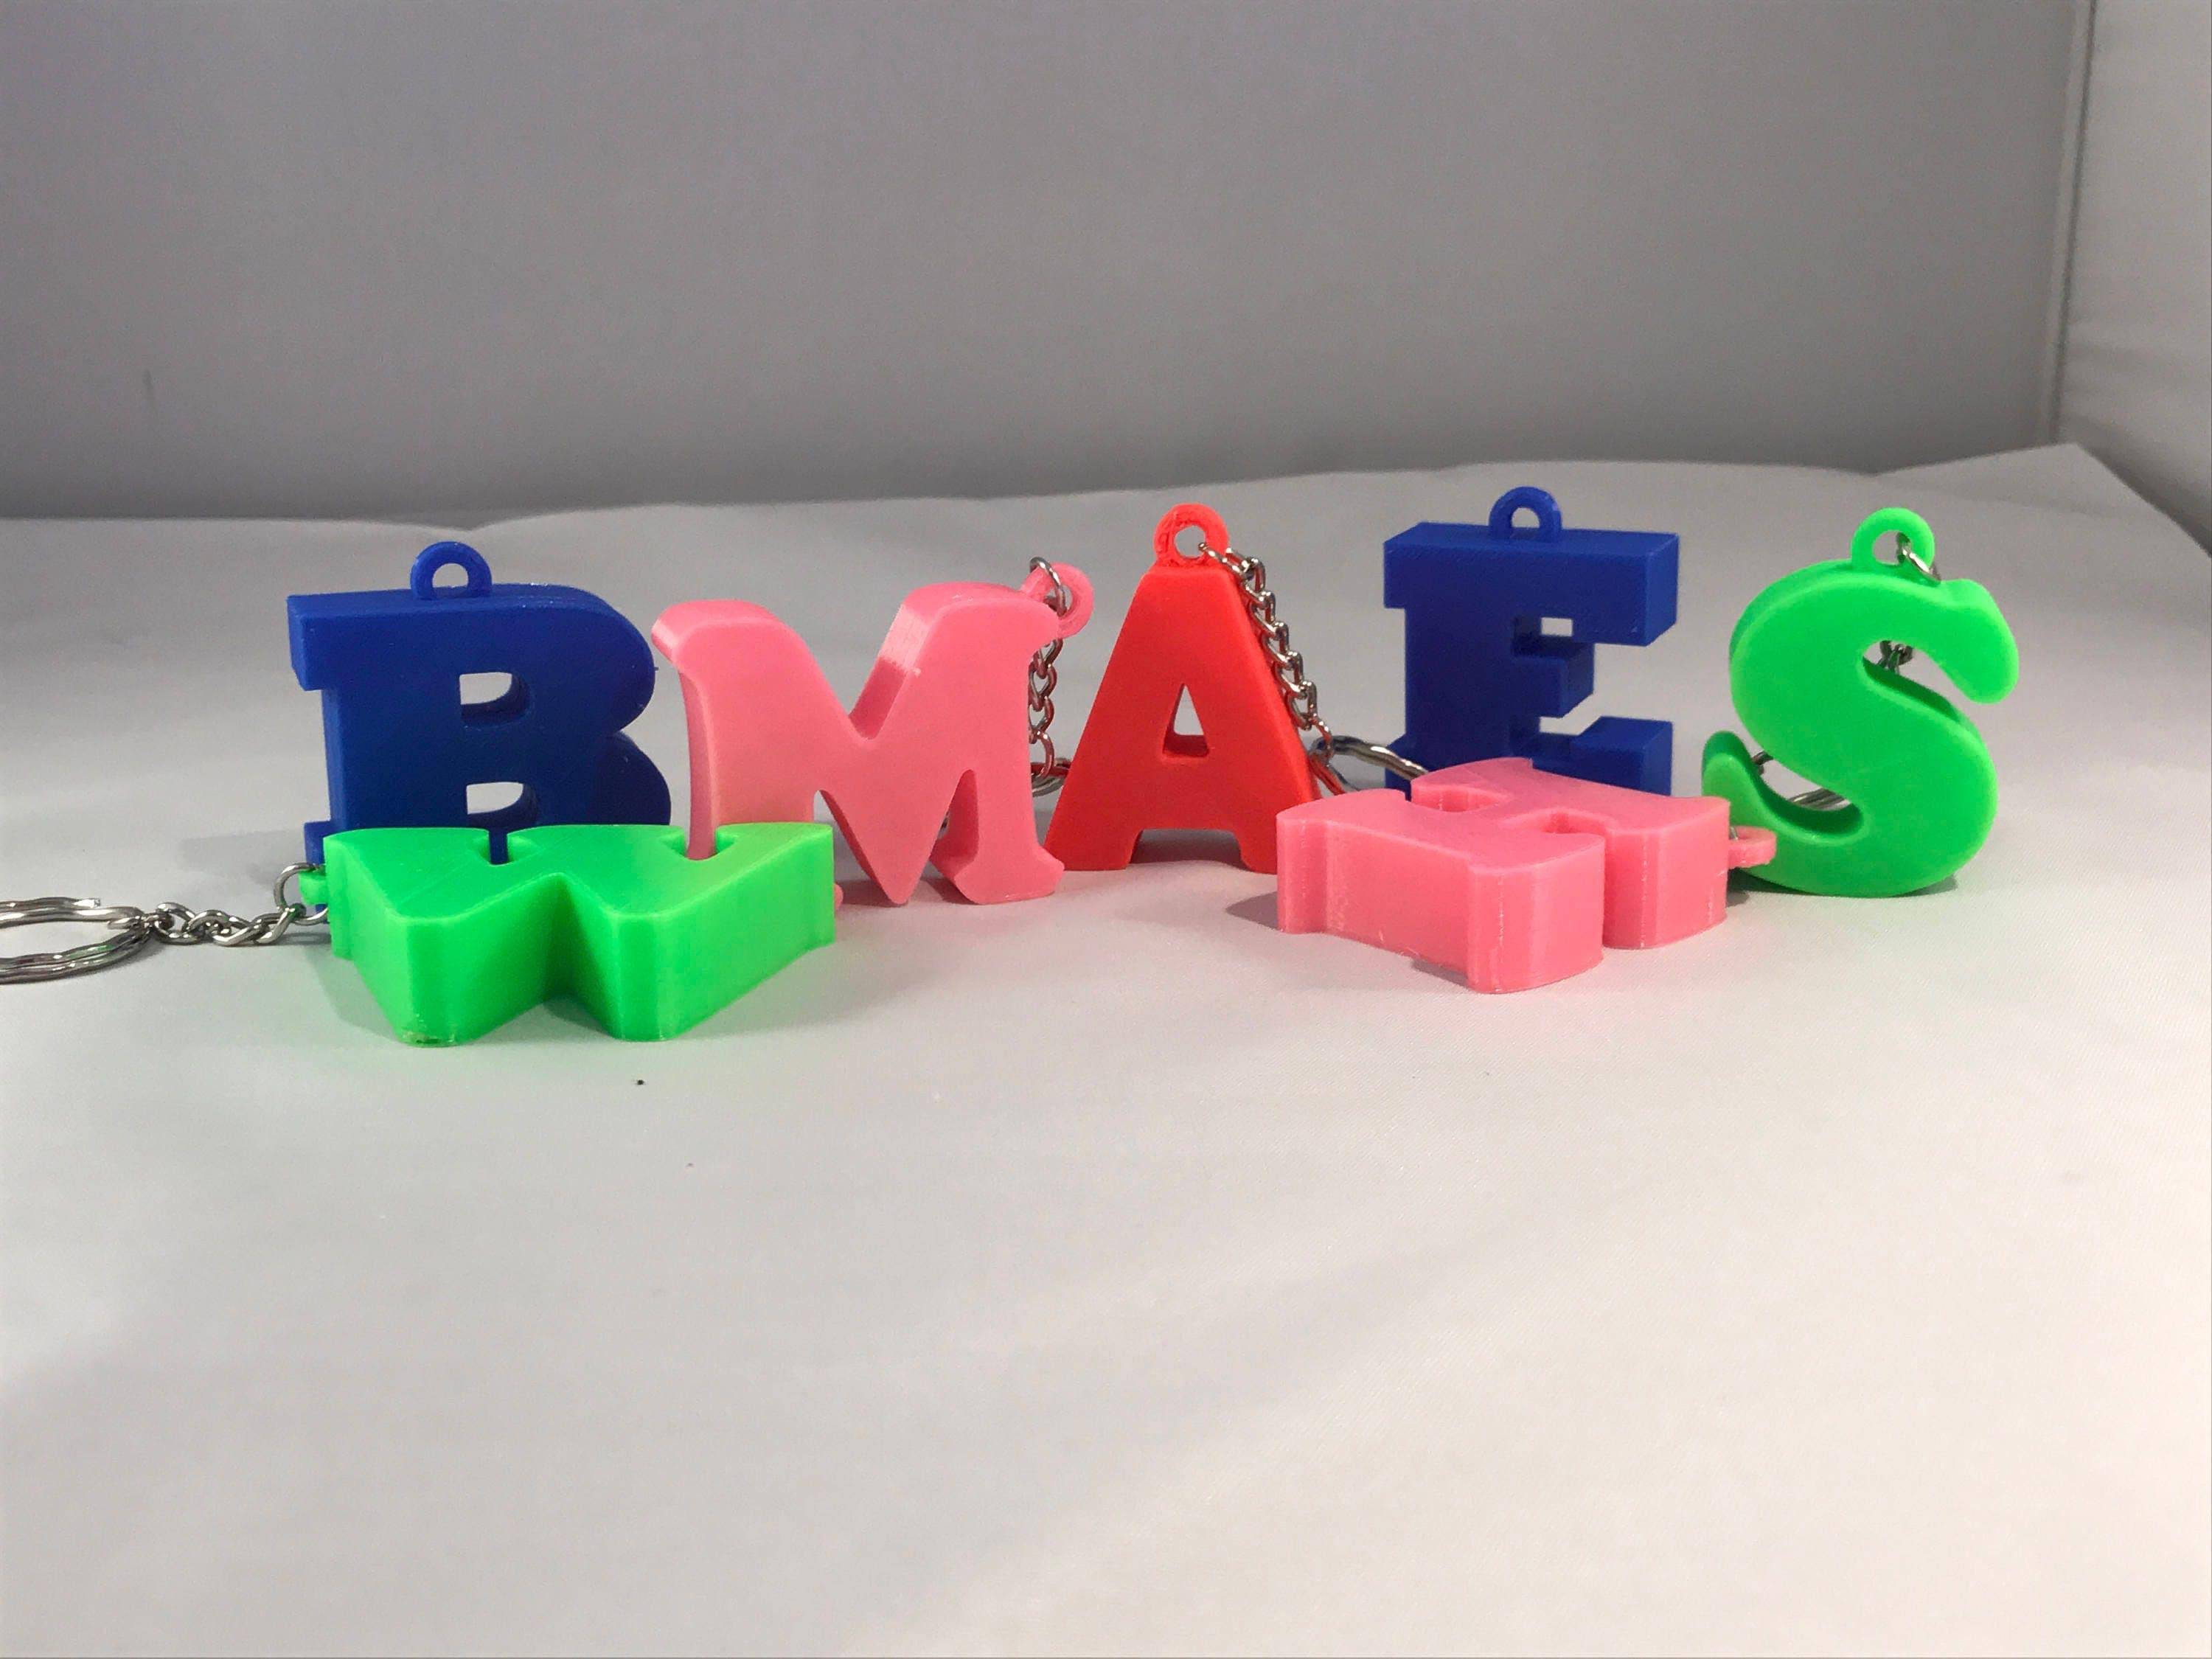 3D Printed Personalised Initial Lettering Keyrings  Keychains  children  adults  school bags  name tags  keys